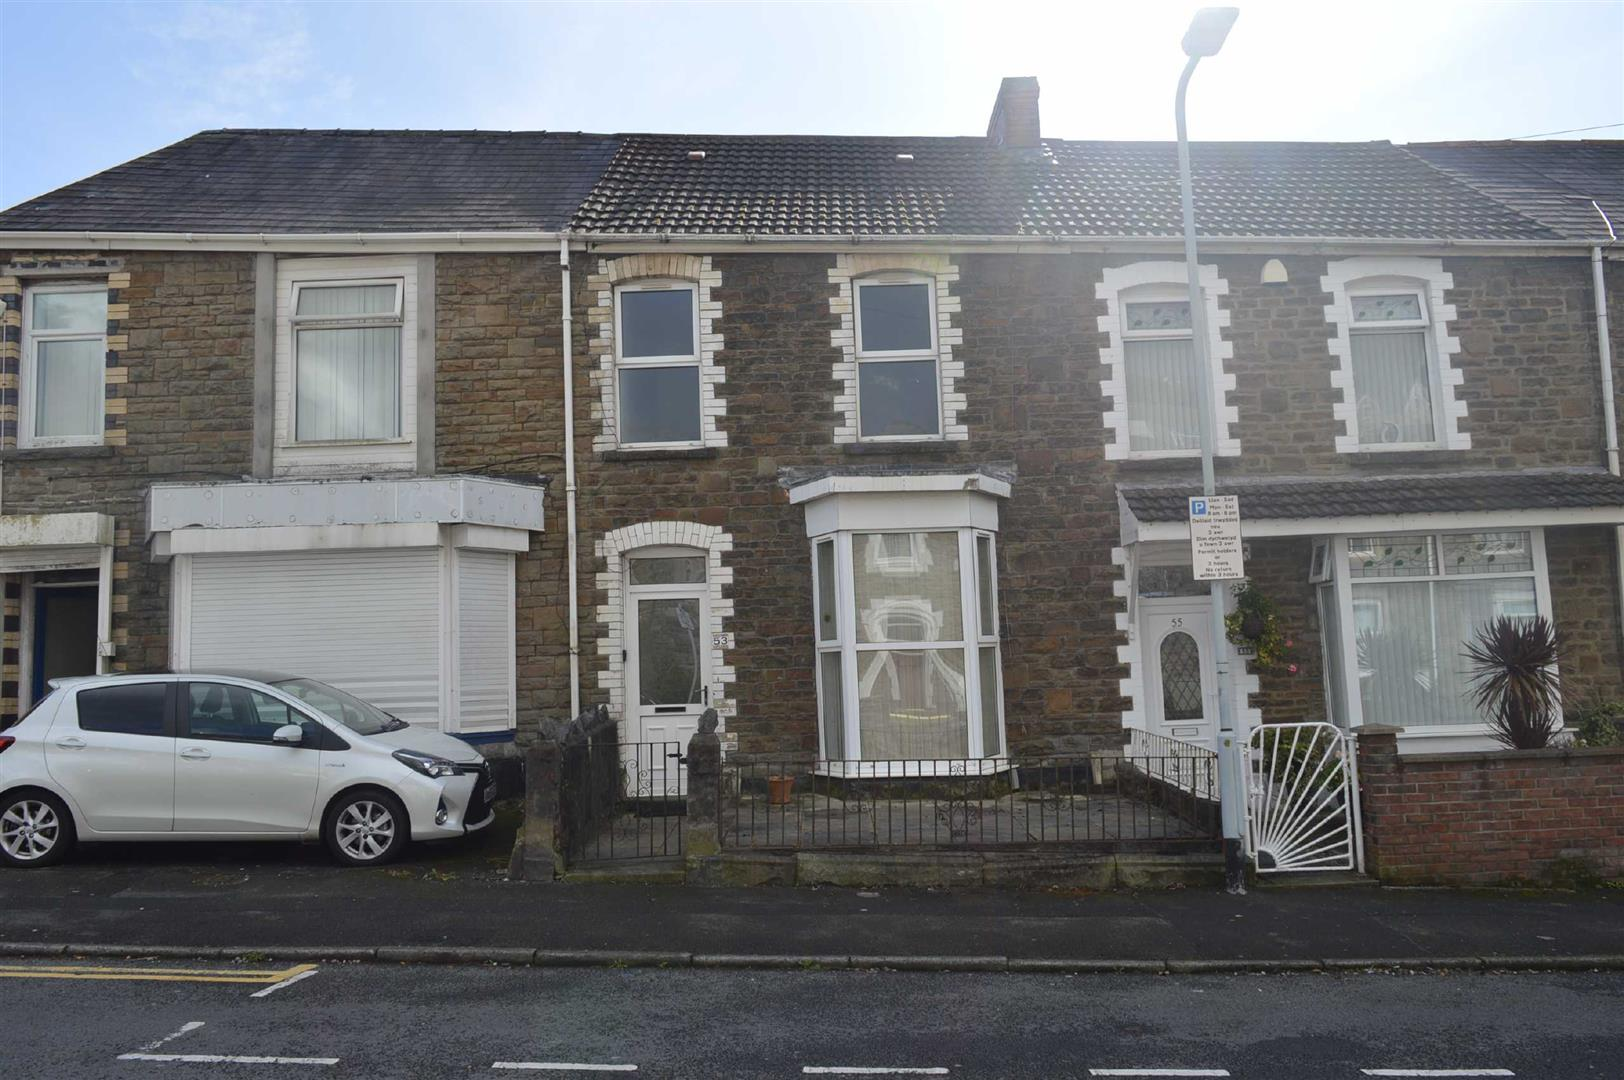 Norfolk Street, Mount Pleasant, Swansea, SA1 6JE